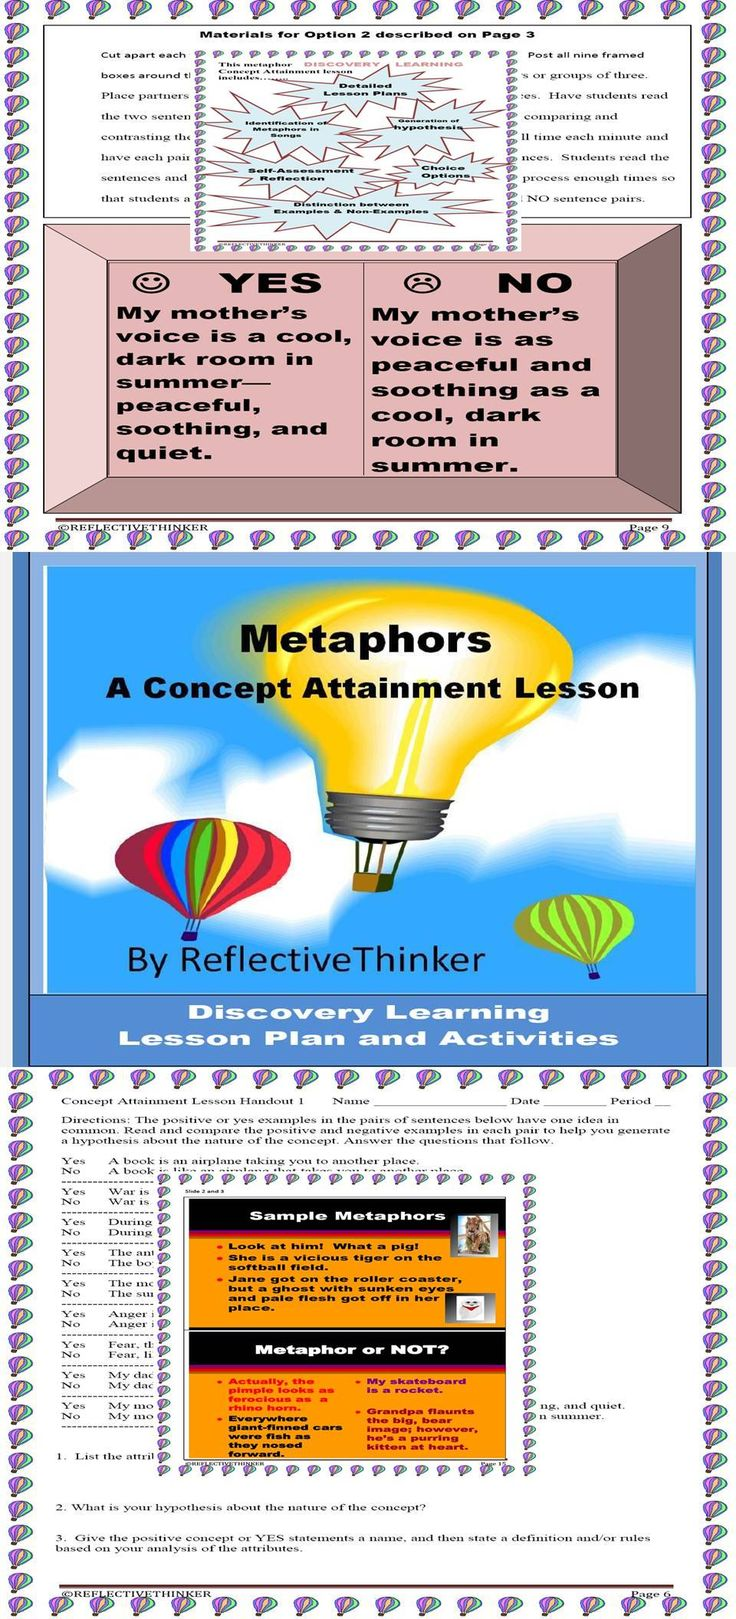 metaphors of critical thinking Questions that promote deeper thinking surveys of college faculty reveal that their number one instructional goal is to promote critical thinking, and reports on the status of american higher education have consistently called for.